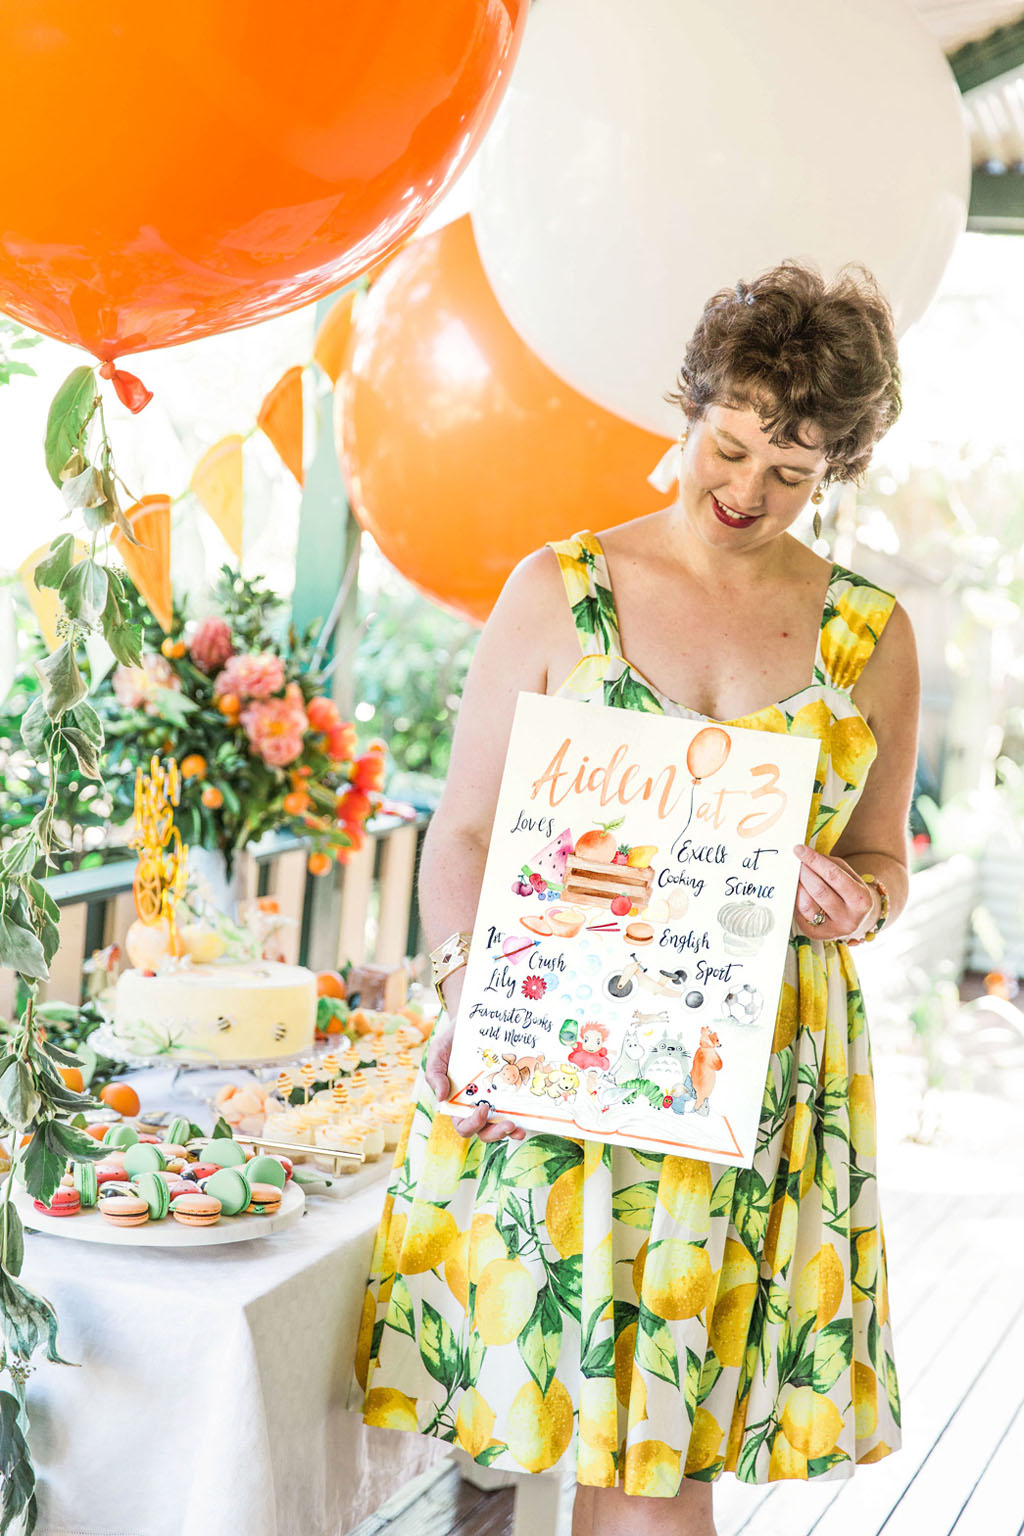 Elizabeth Kelly, graphic designer and watercolour illustrator and creative visionary behind ELK Prints. Party design and styling by ELK Prints. Photography by Amelia Soegijono Photography.